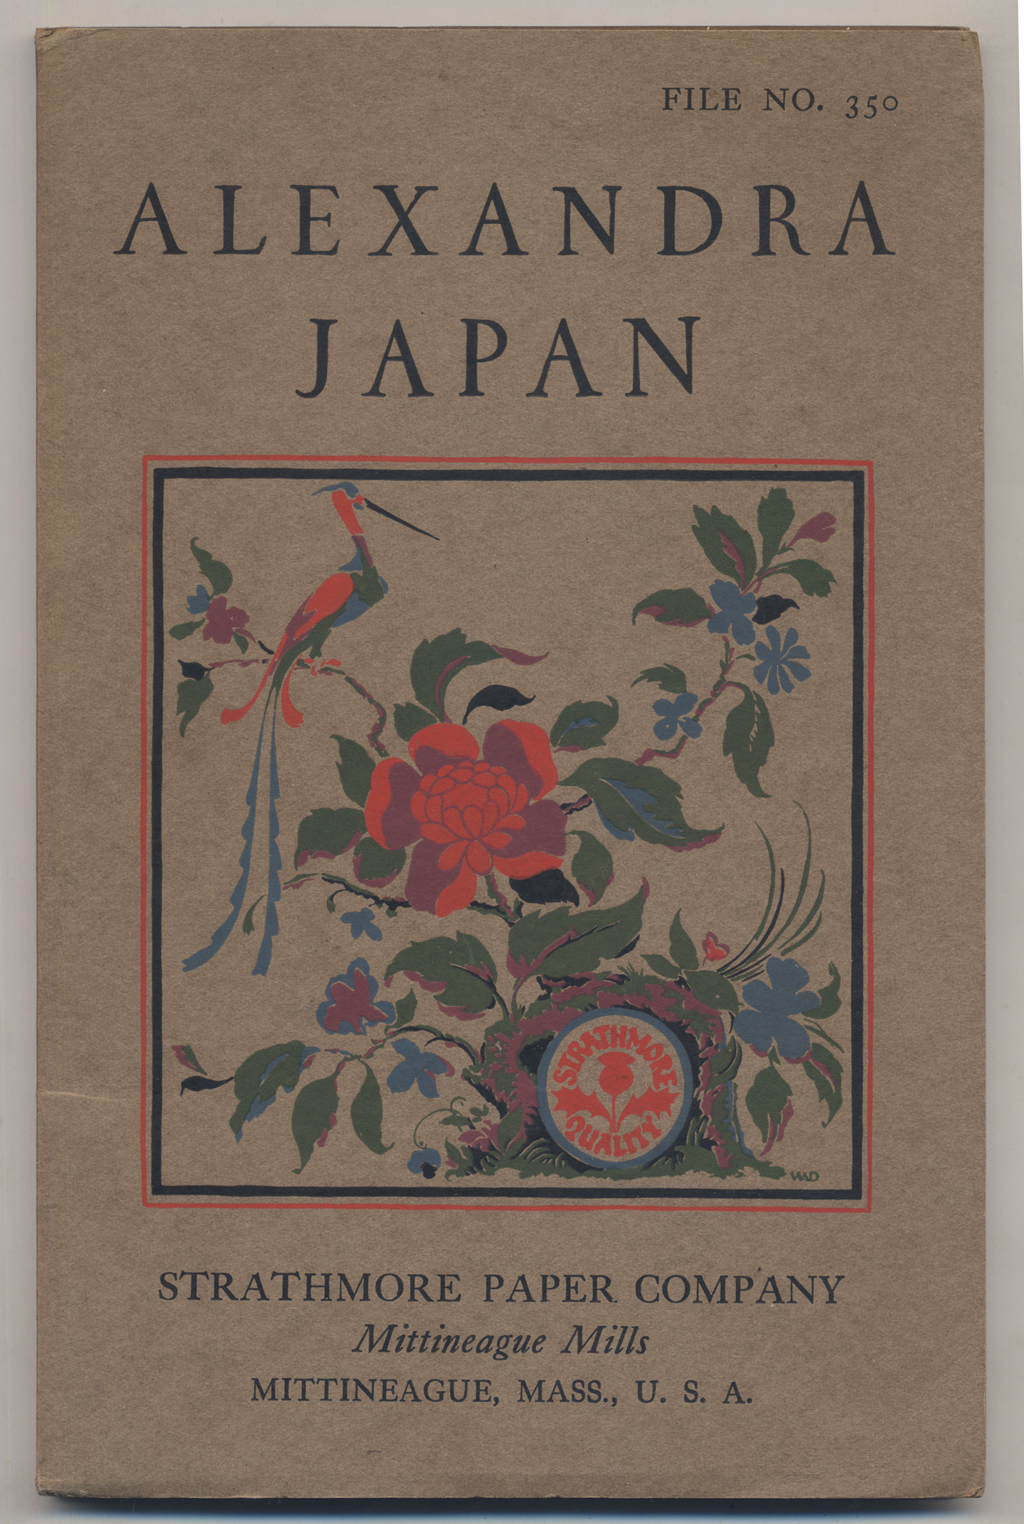 Cover of Alexandra Japan paper specimen for Strathmore Paper Co. Design, illustration and lettering by W.A. Dwiggins.